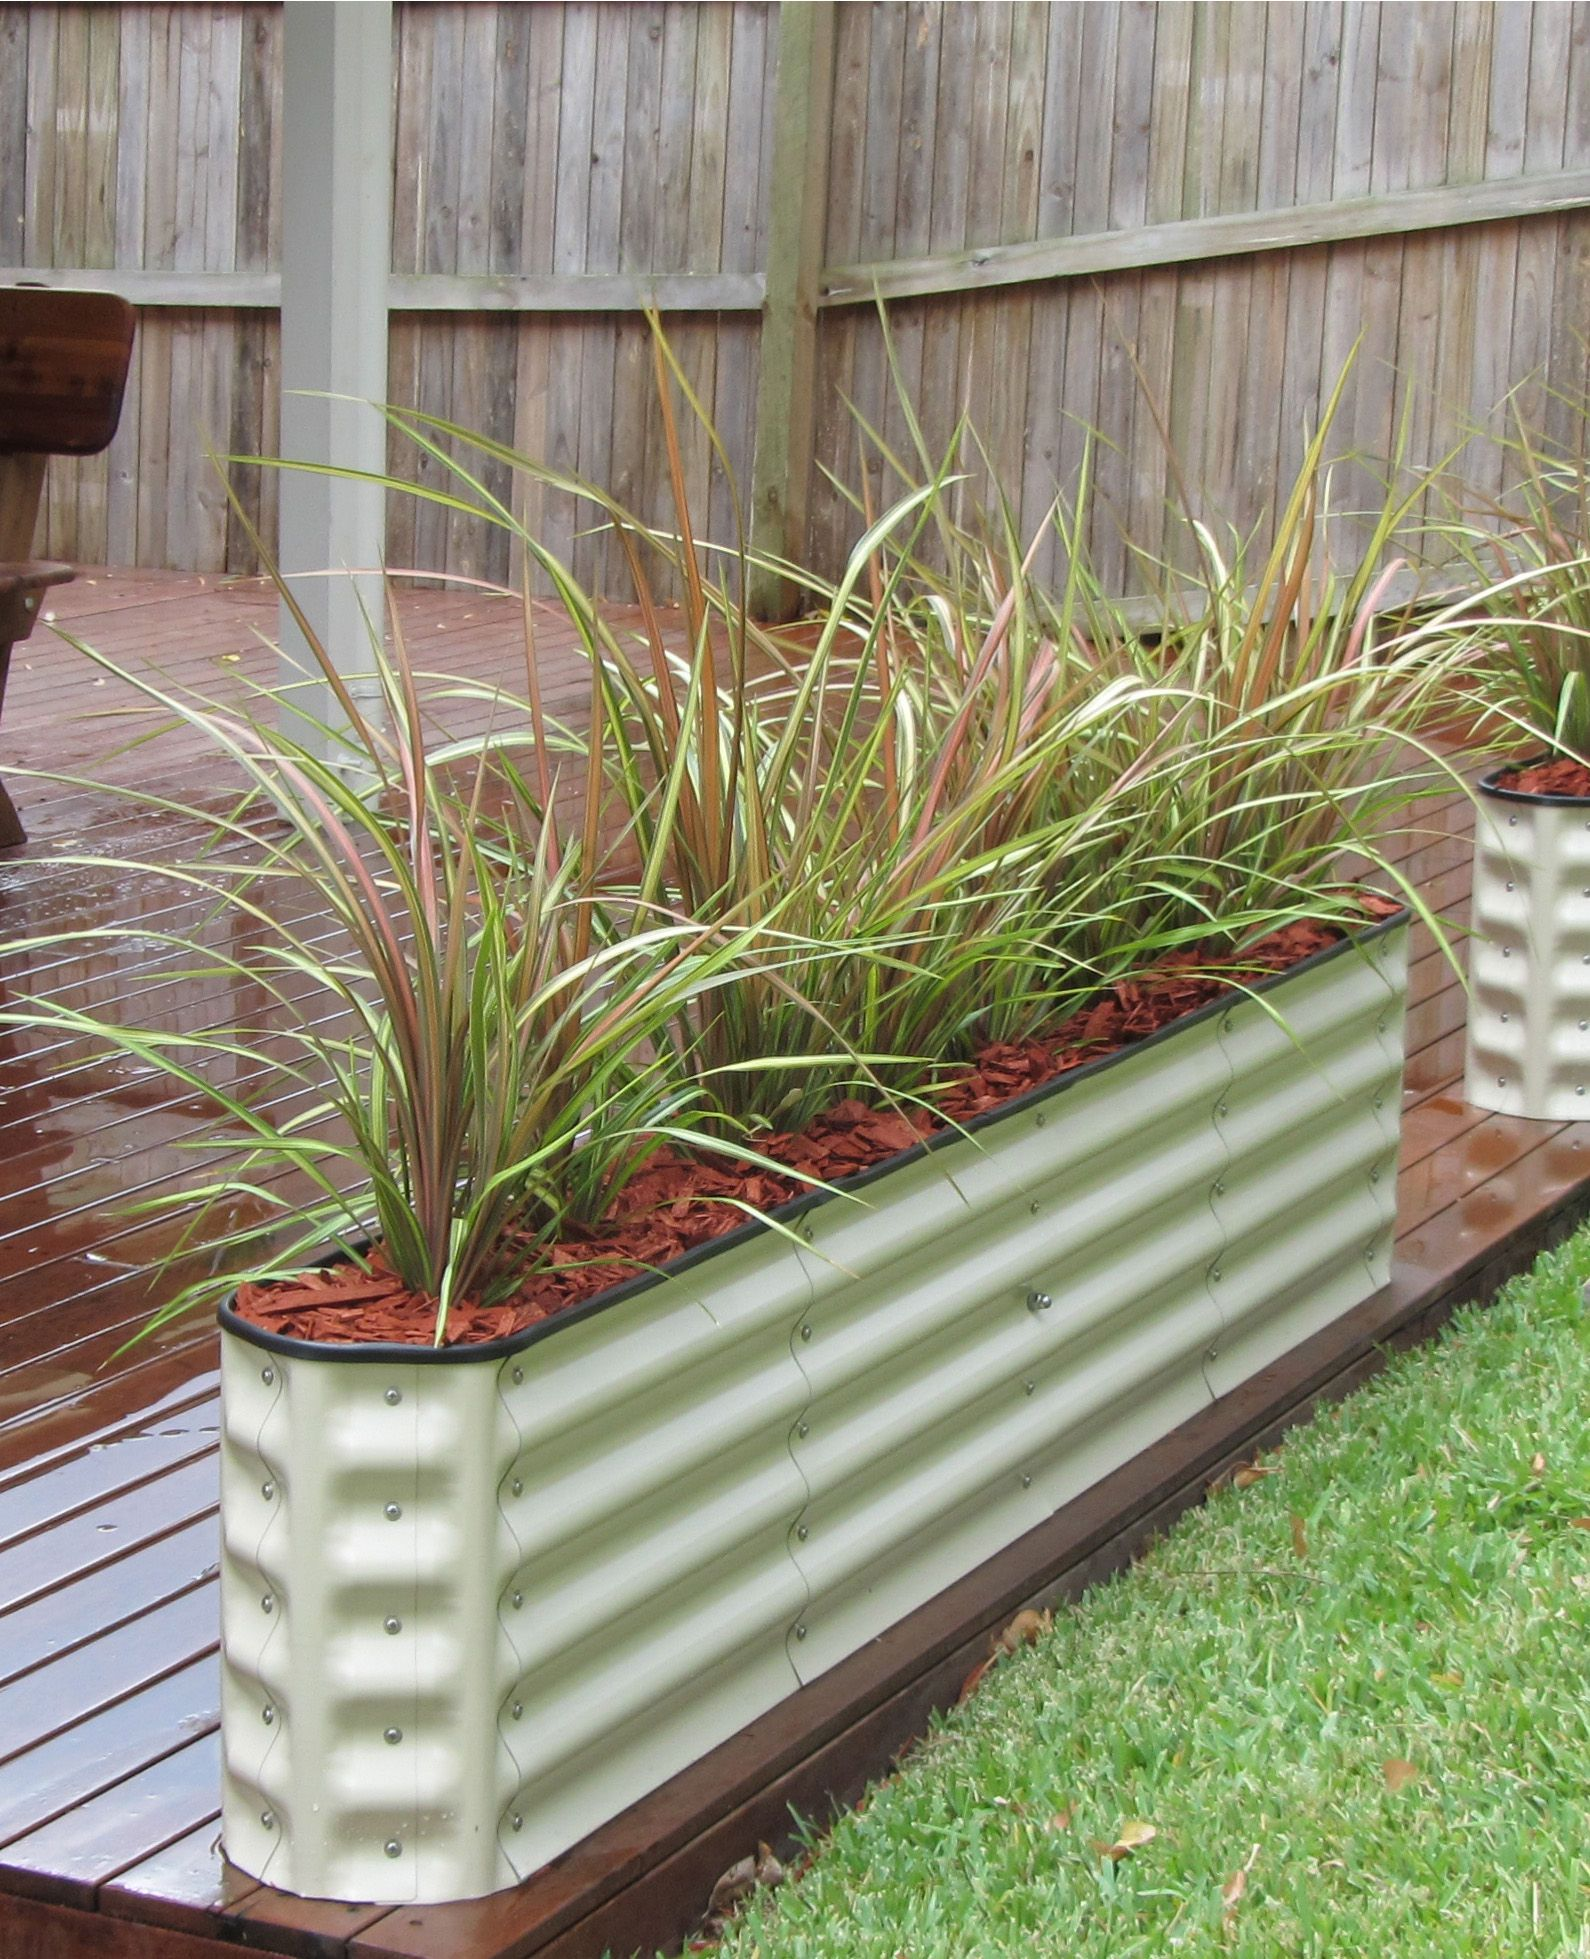 Metal Raised Garden Bed Modular up to 10 Shapes